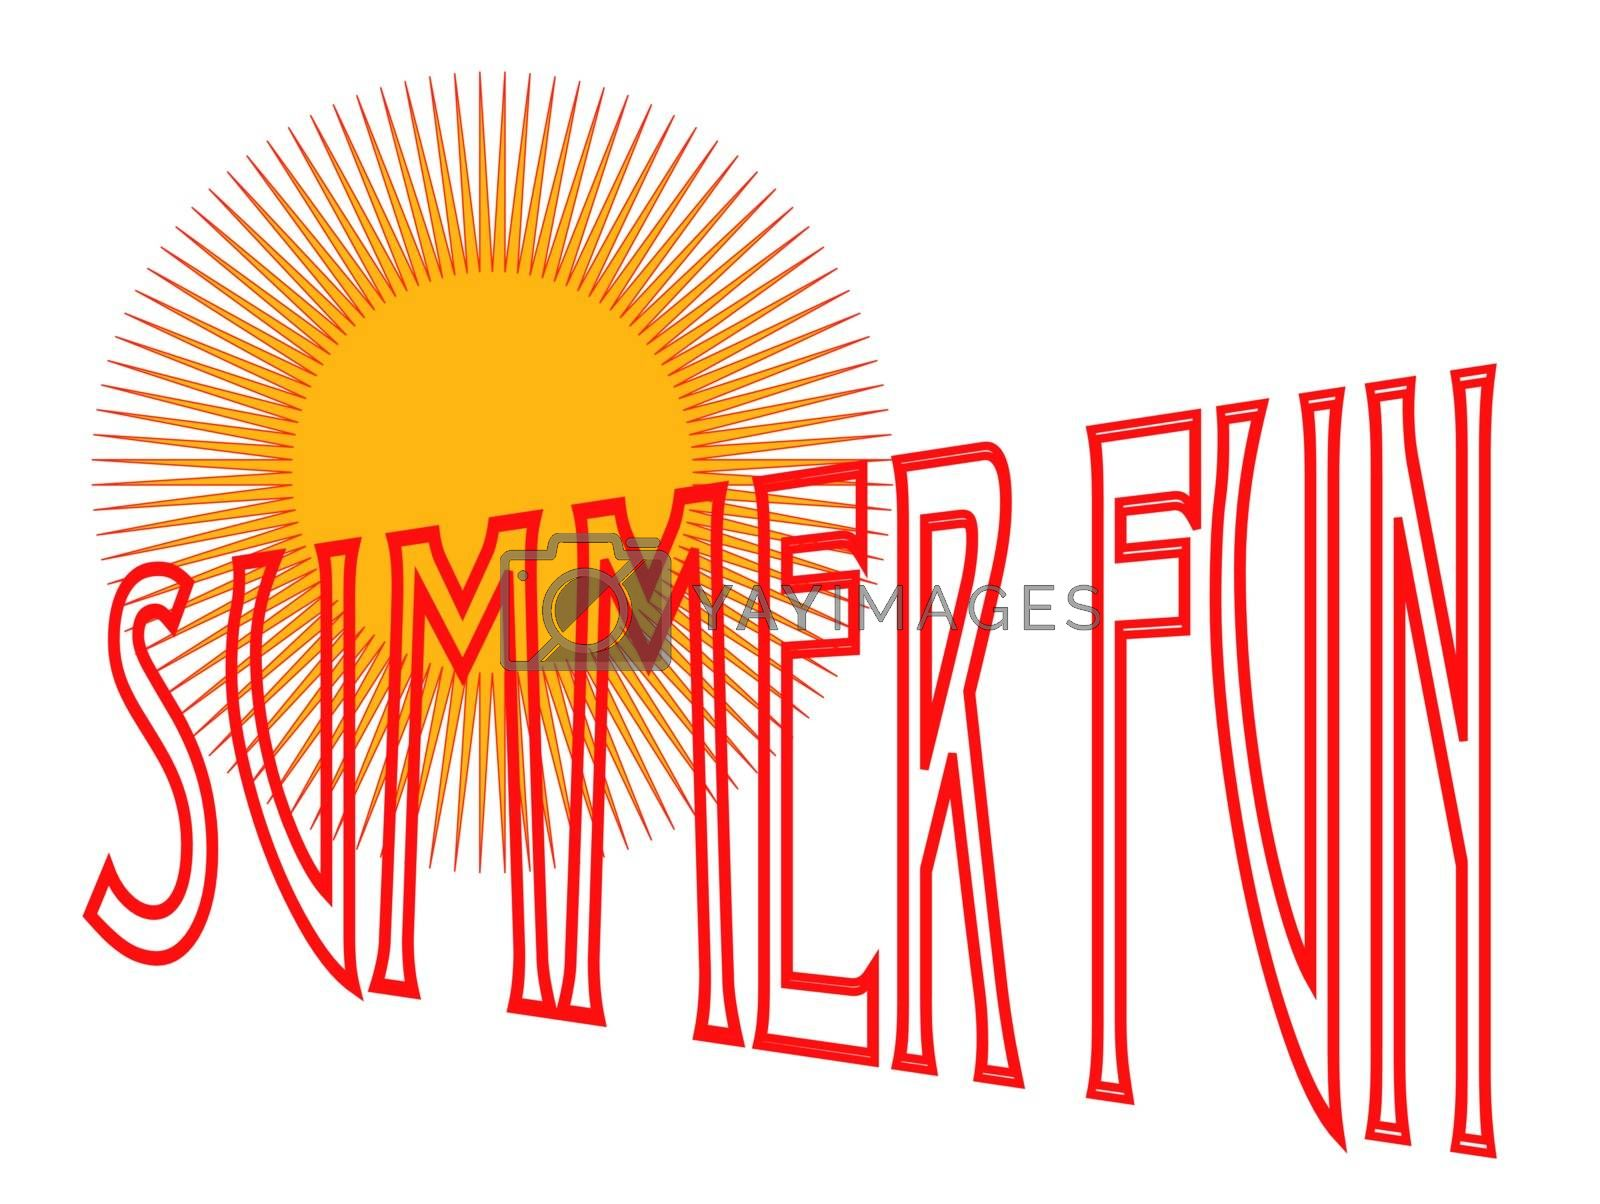 A summer fun poster type image, isolated over white.